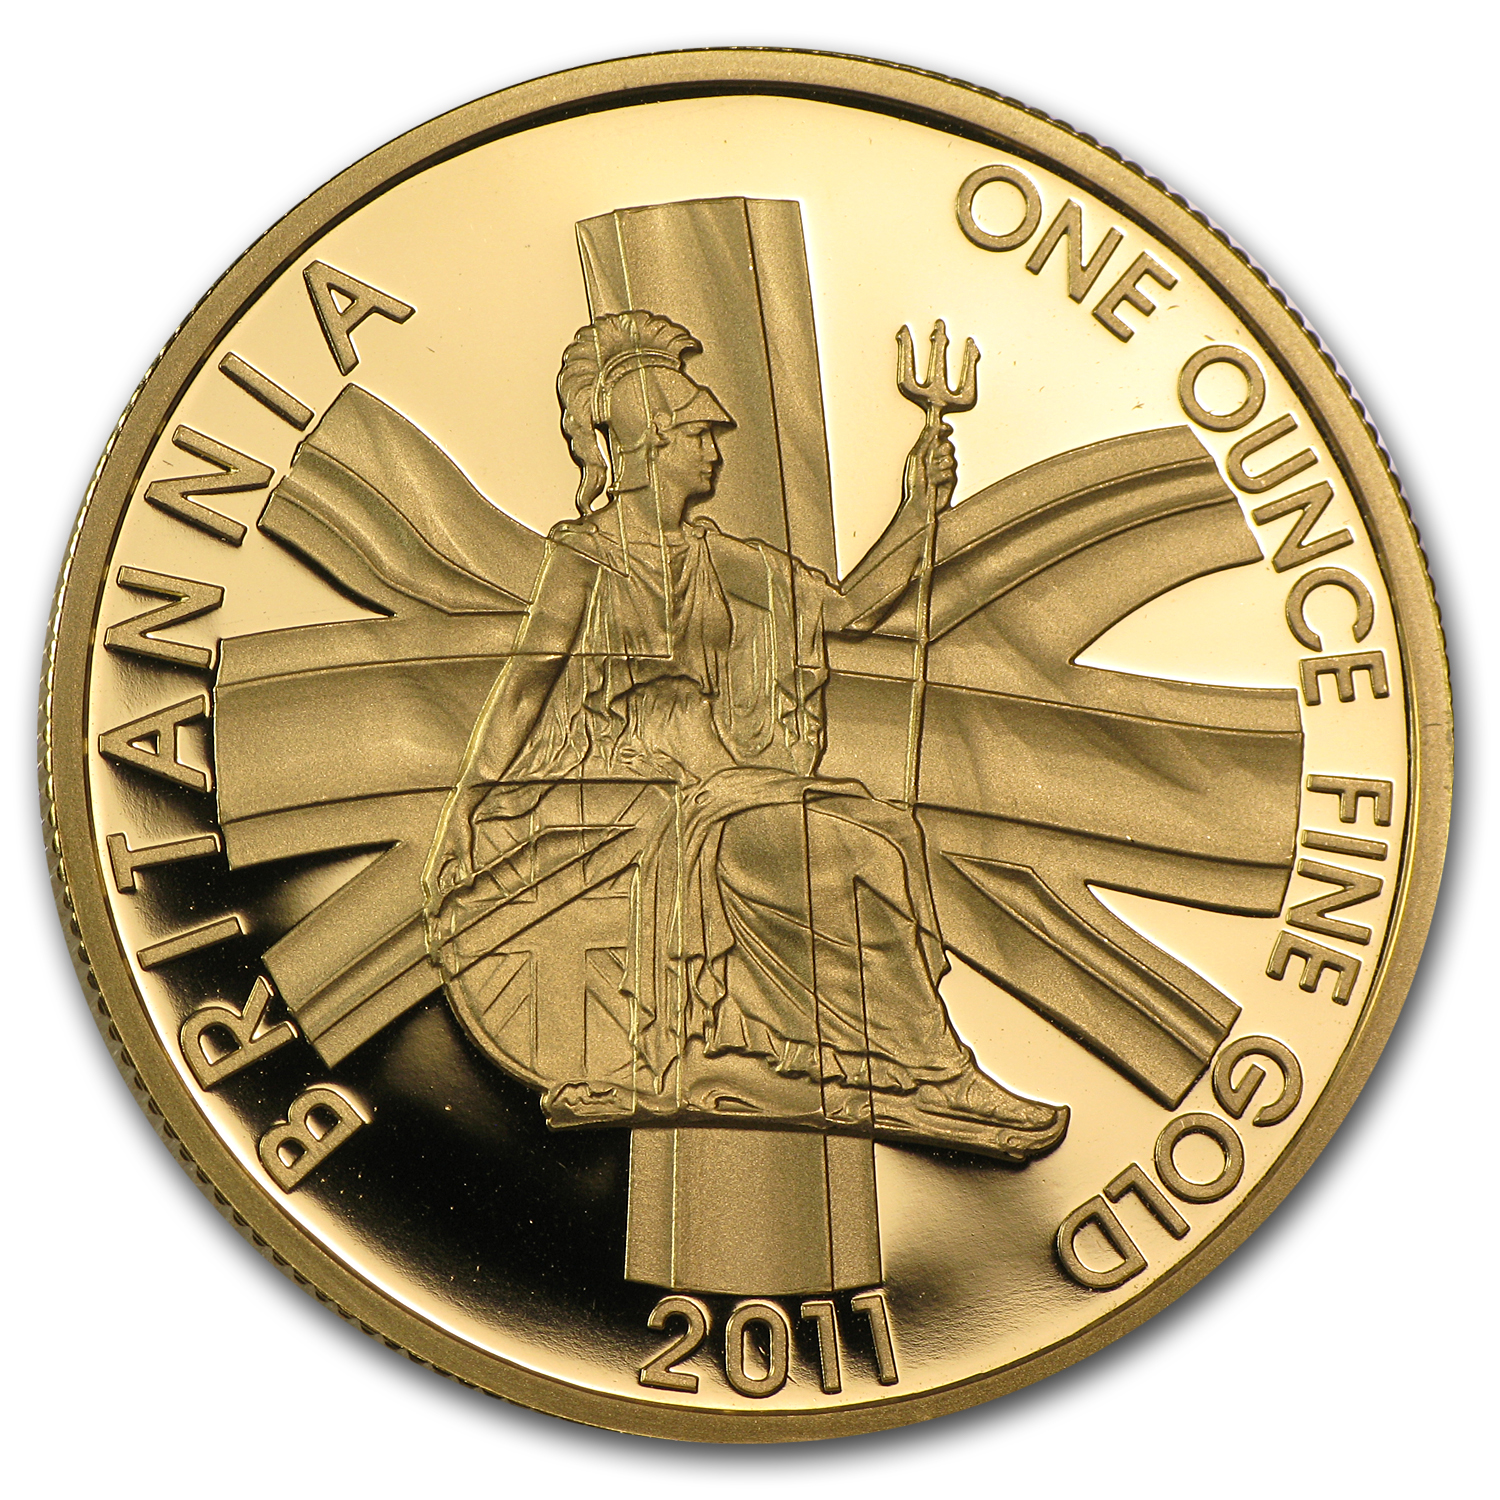 2011 1 oz Proof Gold Britannia - Capsule